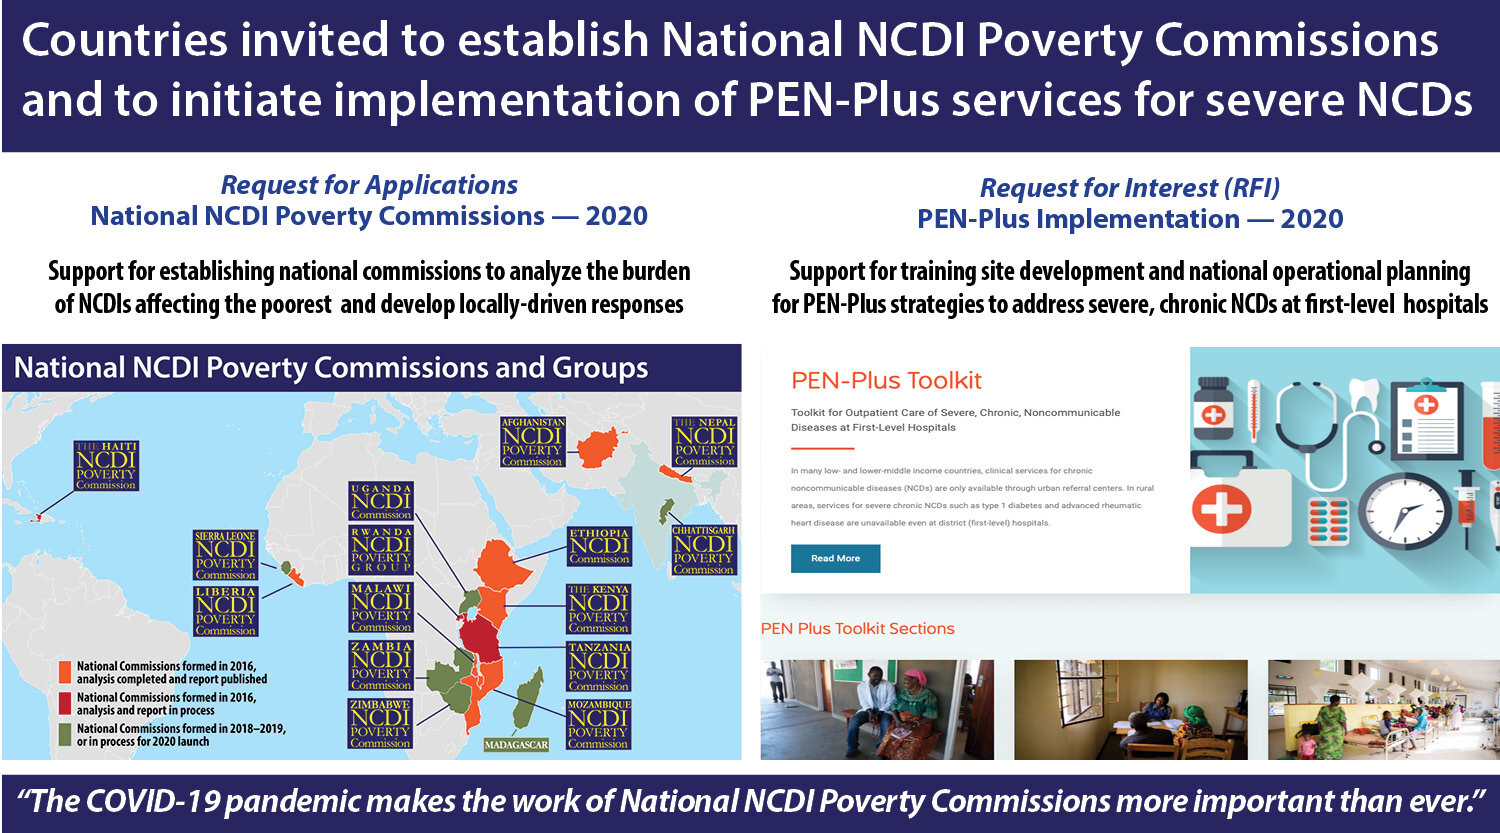 ncdipoverty banner image.jpg